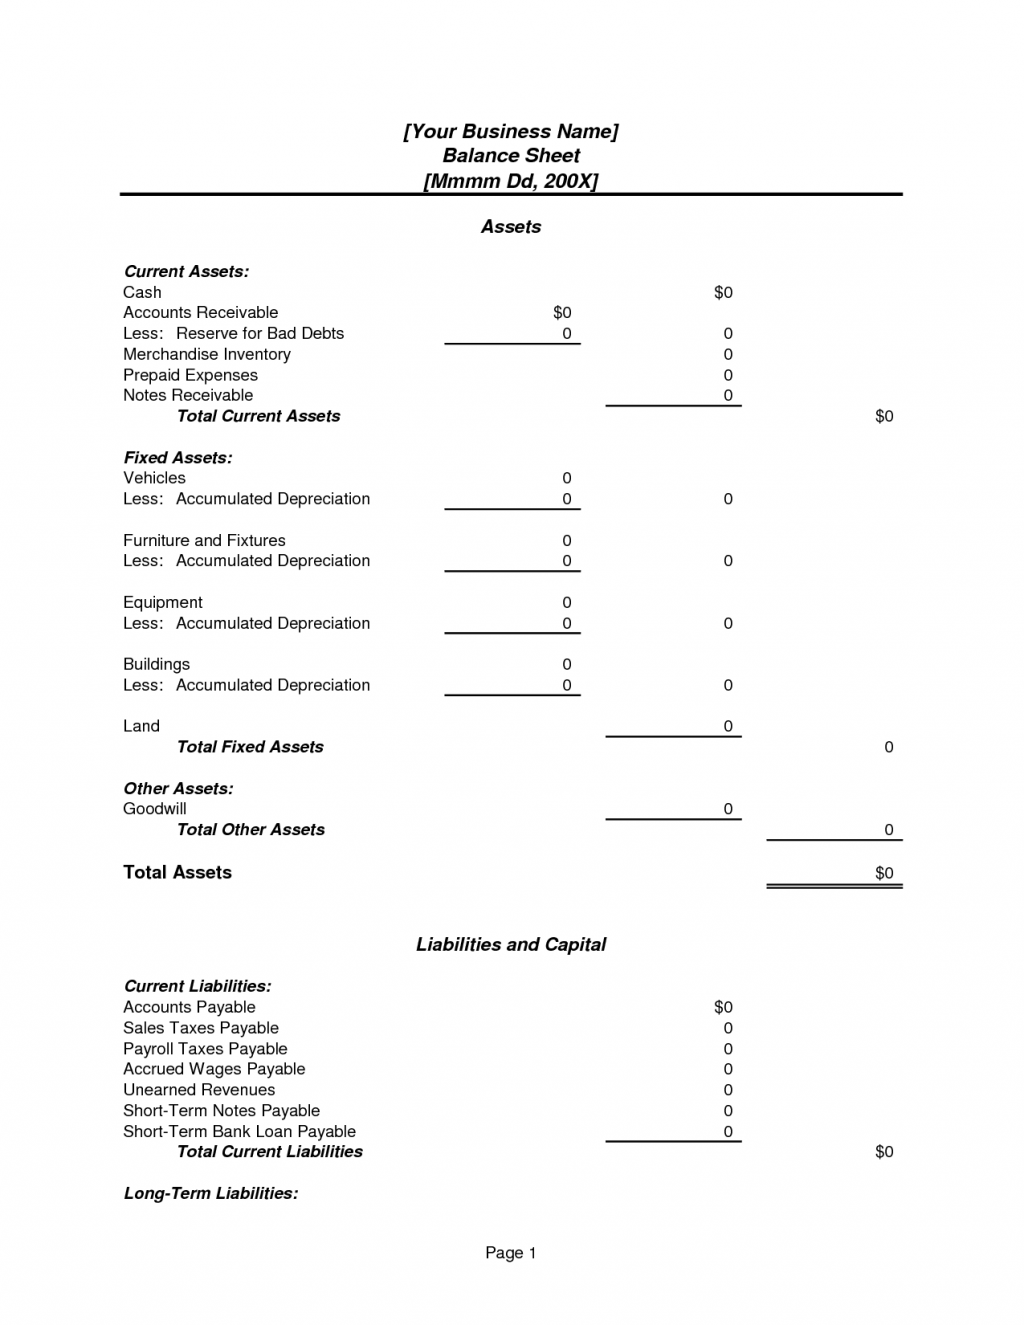 Personal assets and liabilities statement template for Asset and liability statement template